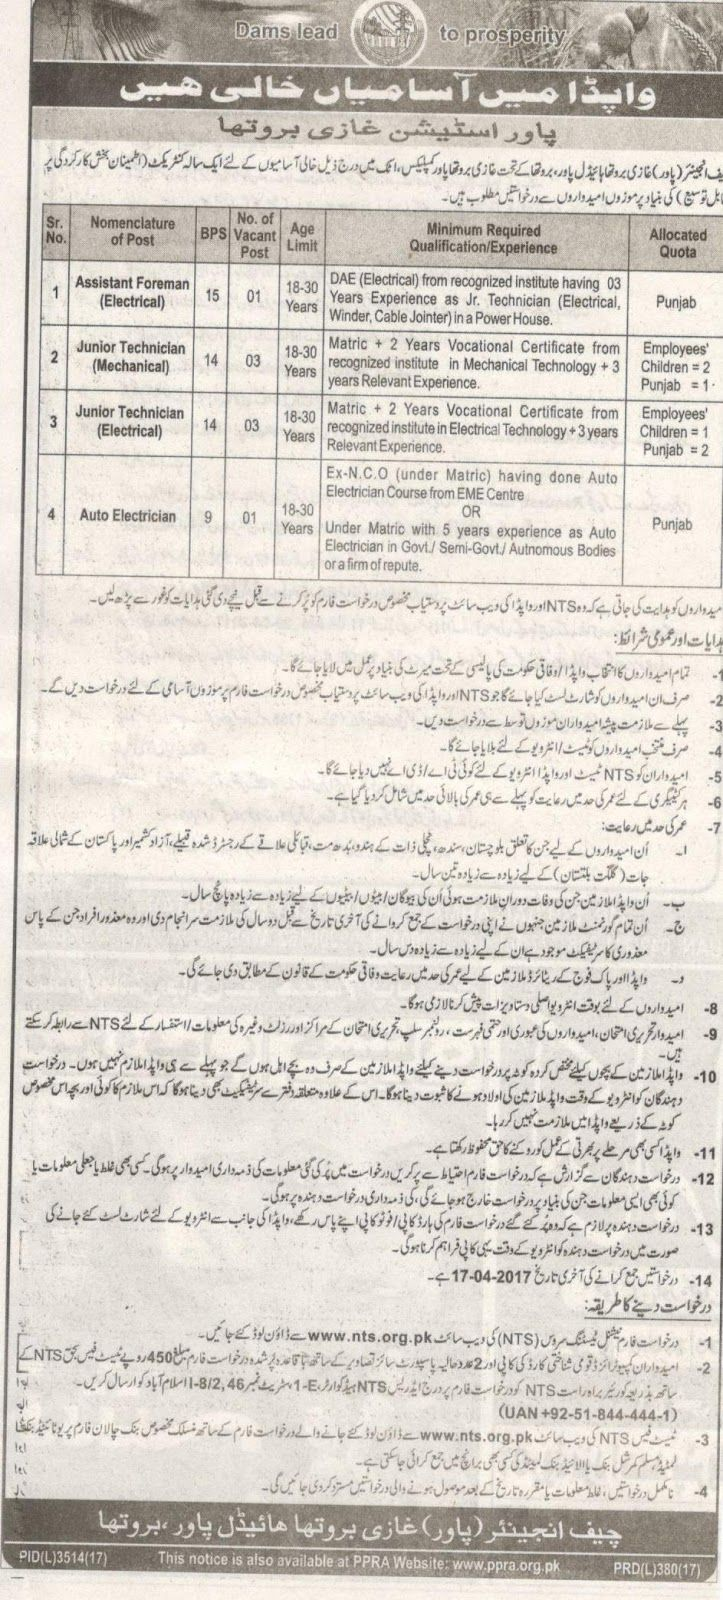 To Download Application Form :  Click Here  Last Date For Application Submission:  Monday 17th April 2017  Test Date:  Will be Announced Soon  Content Weightages  Sr #  Post Name  Post Related  General Knowledge  English  Islamic Studies  Pak Studies  1  Assistant Foreman(Electrical)  20%(DAE Electrical)  20%  20%  20%  20%  2  Junior Technician (Mechanical)  20%(Vocational Certificate Mechanical)  20%  20%  20%  20%  3  Junior Technician (Electrical)  20%(Vocational Certificate Electrical)…